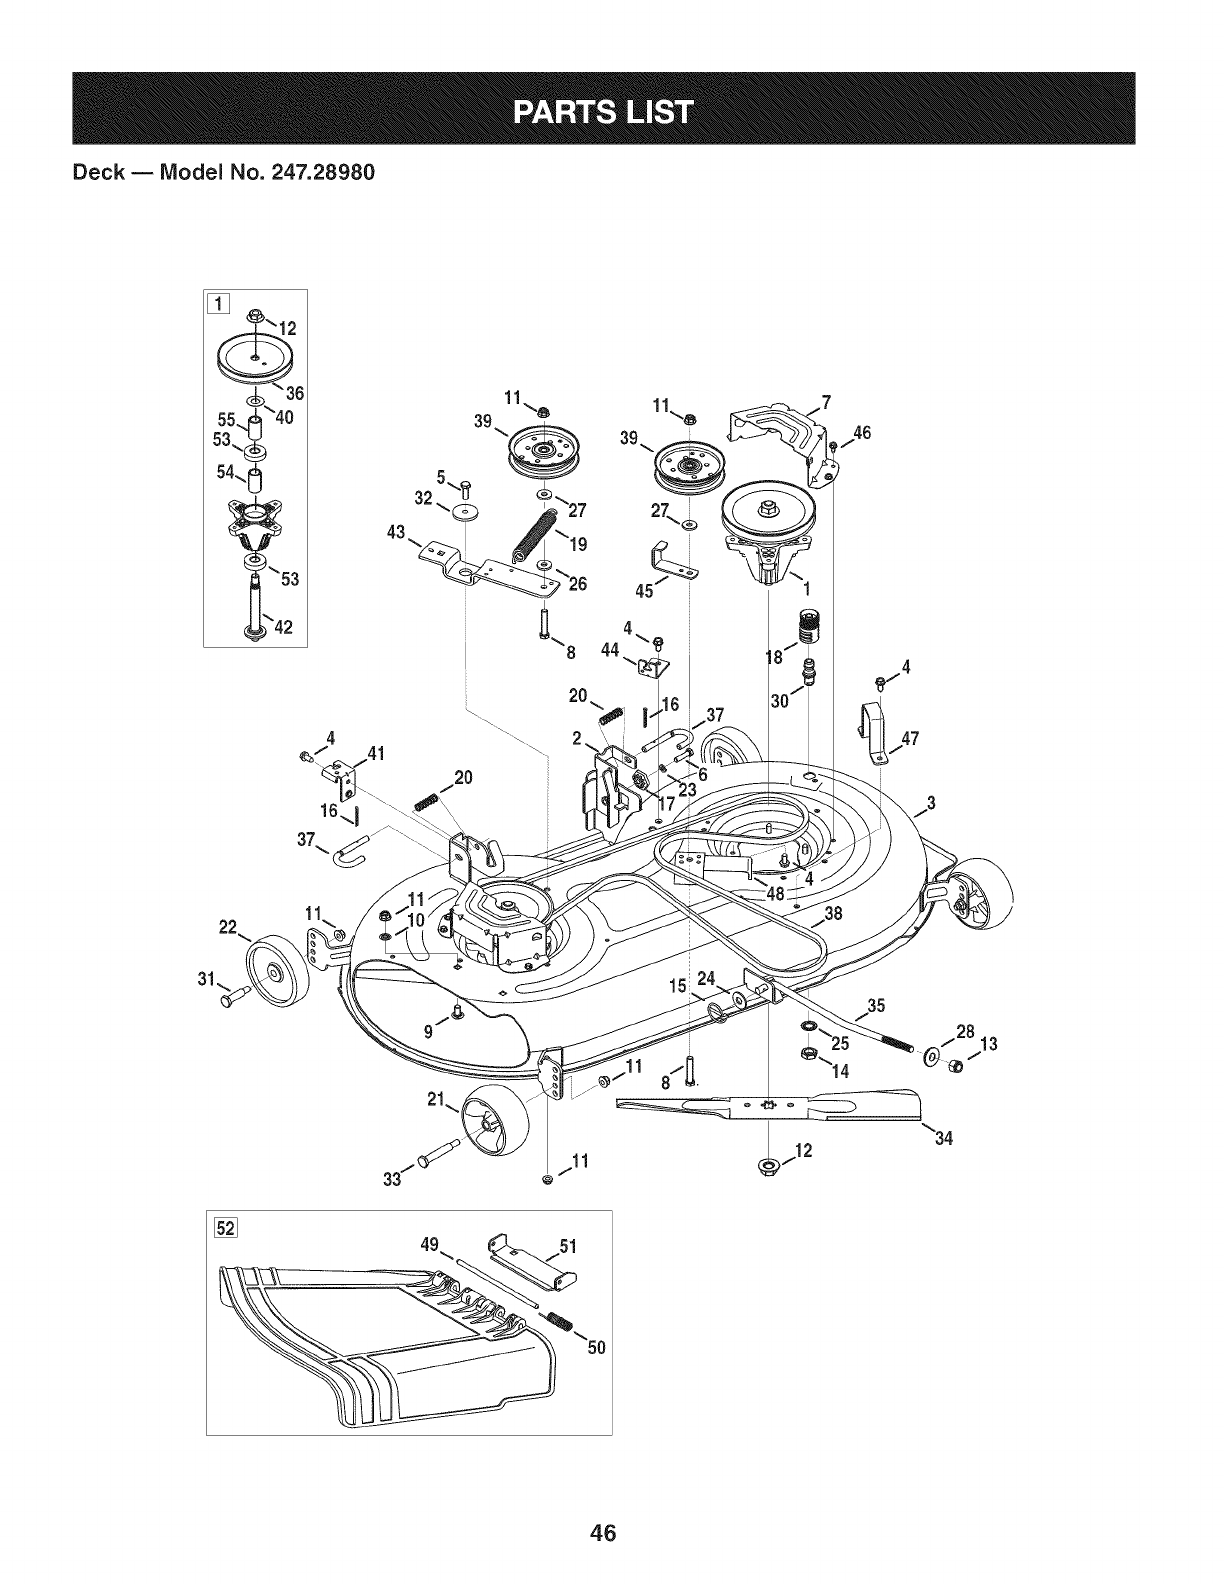 page 46 of craftsman lawn mower 247 28980 user guide